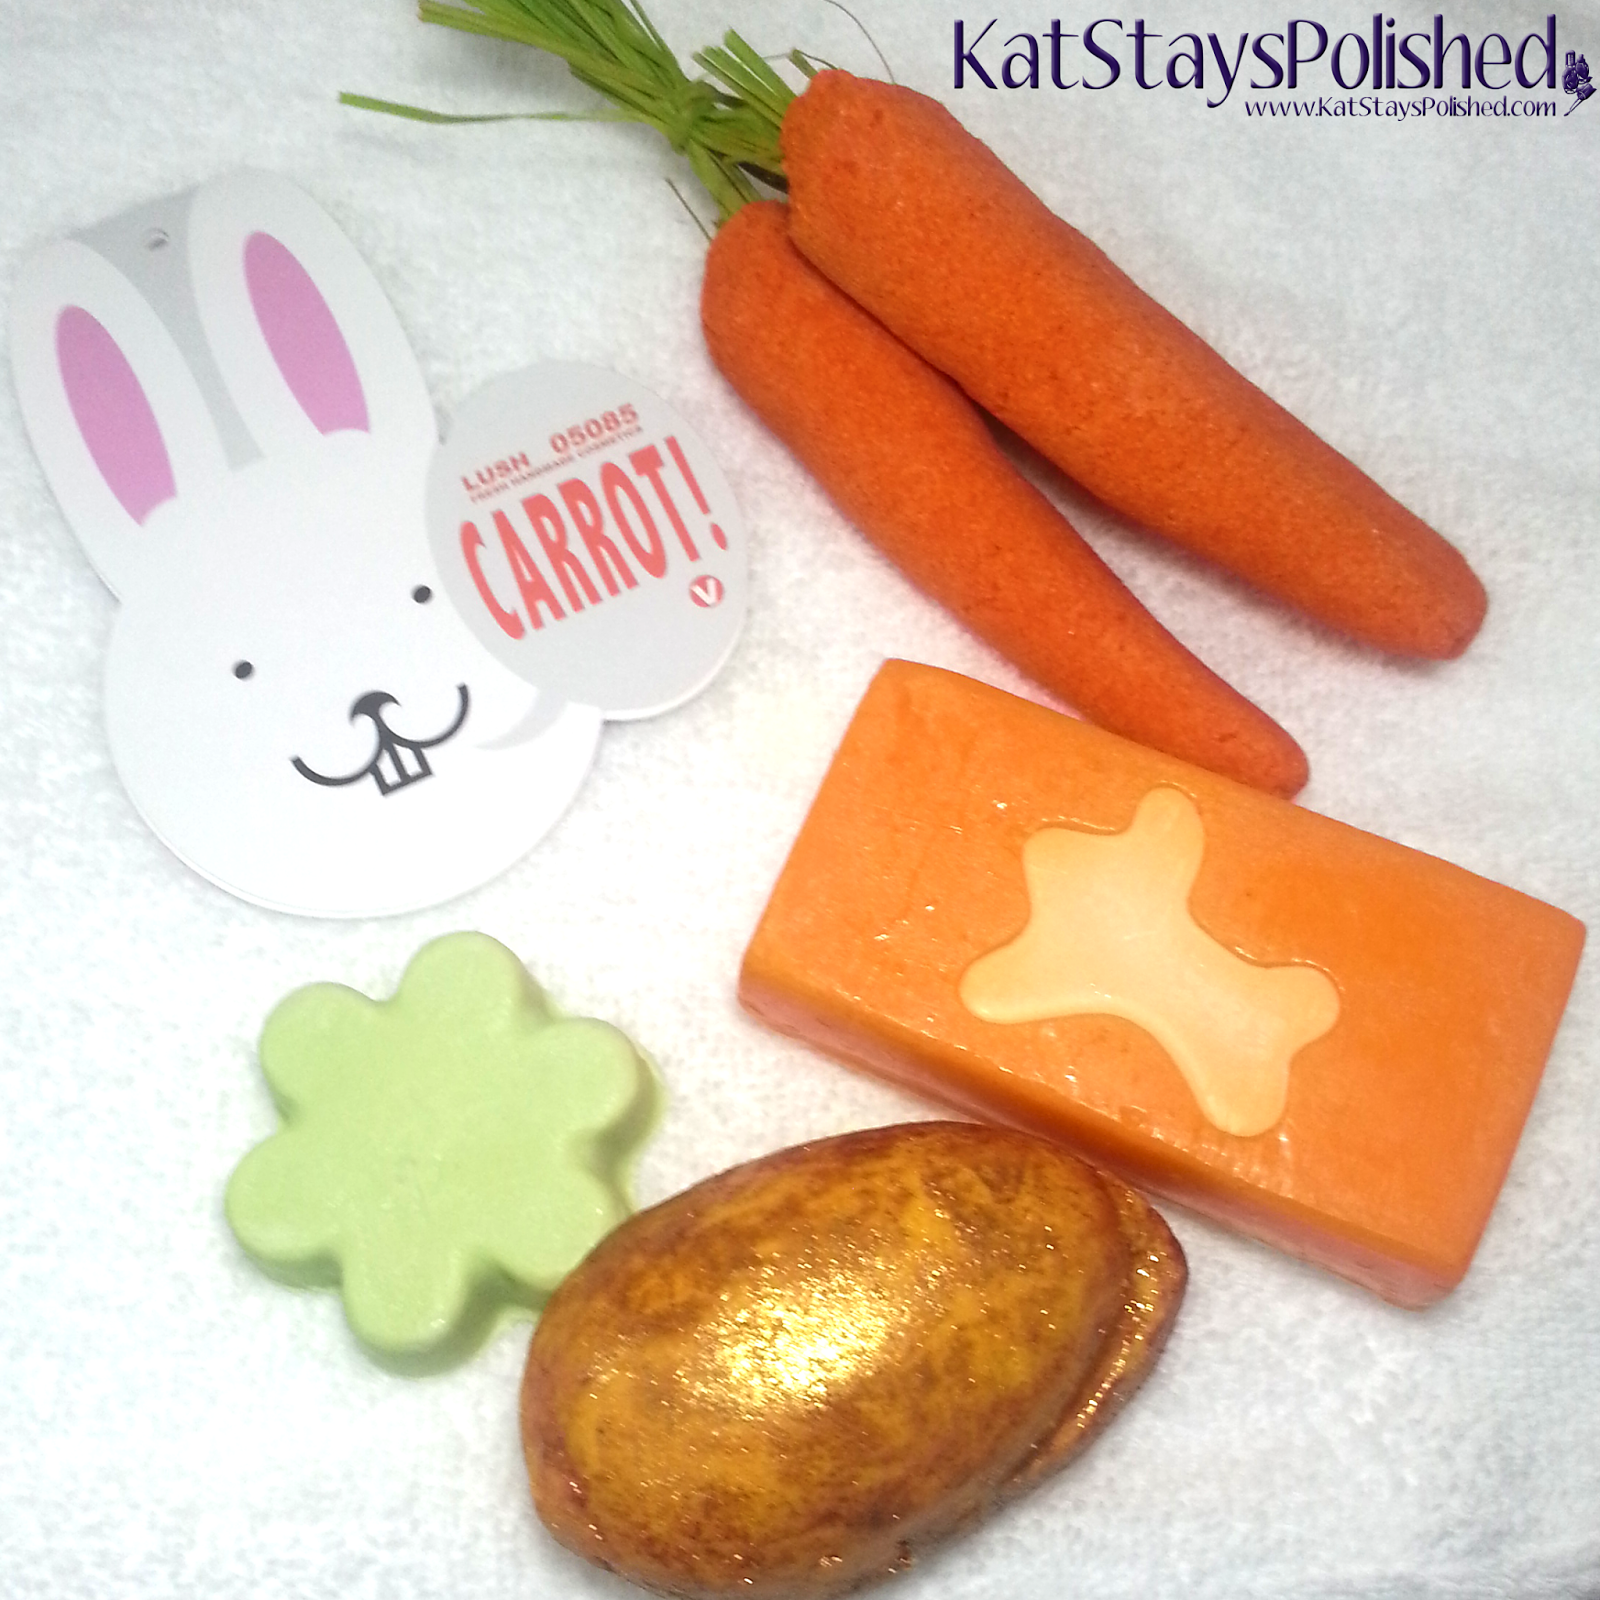 Lush easterspring 2014 carrot gift set kat stays polished lush easterspring 2014 carrot gift set kat stays polished heather negle Image collections